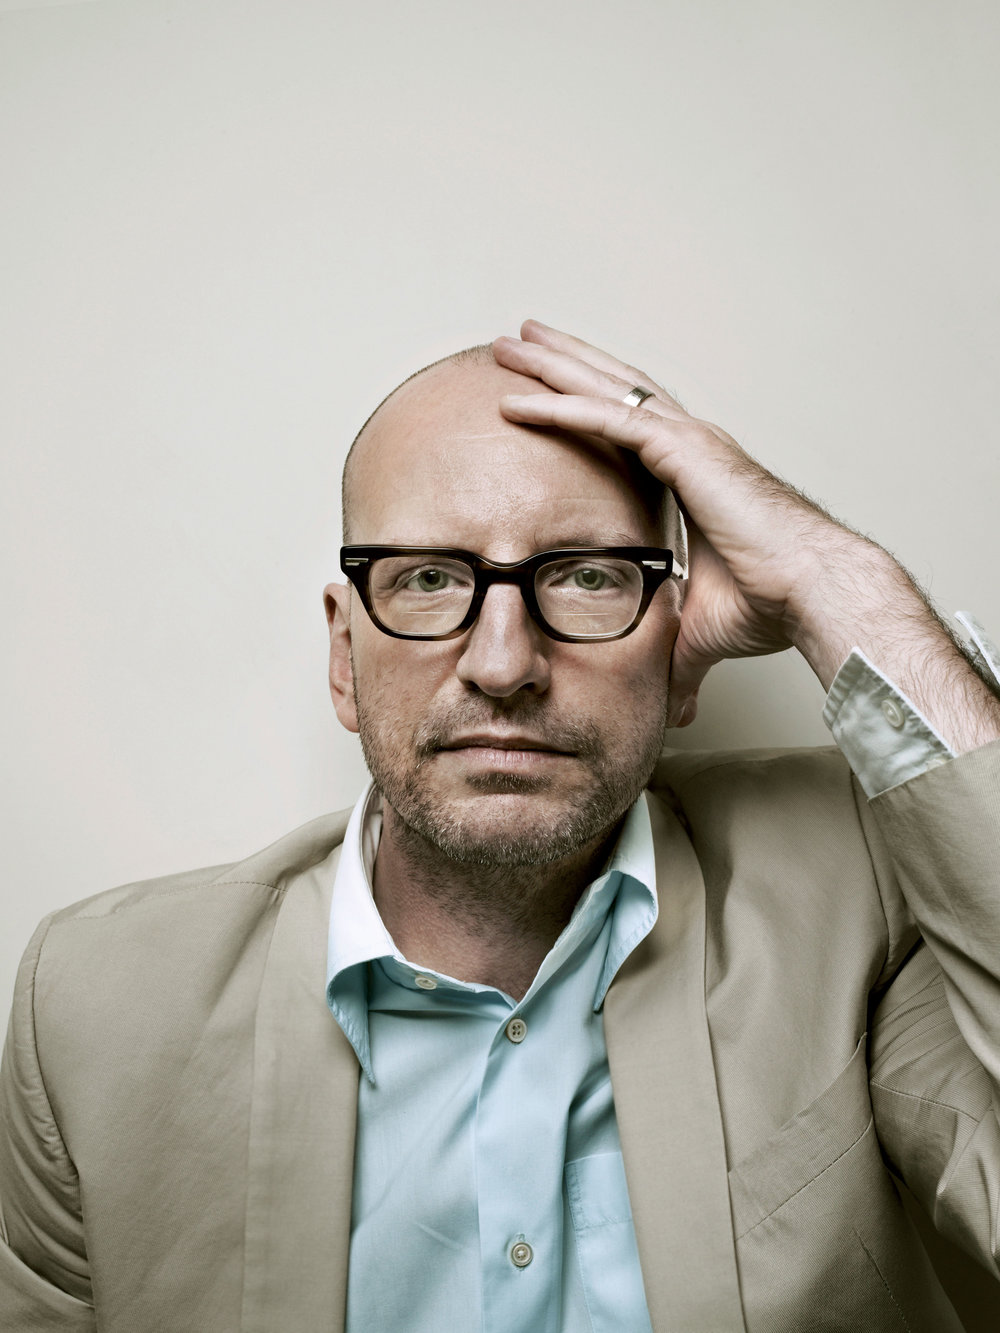 Steven Soderbergh - Film Director, Screenwriter, Producer